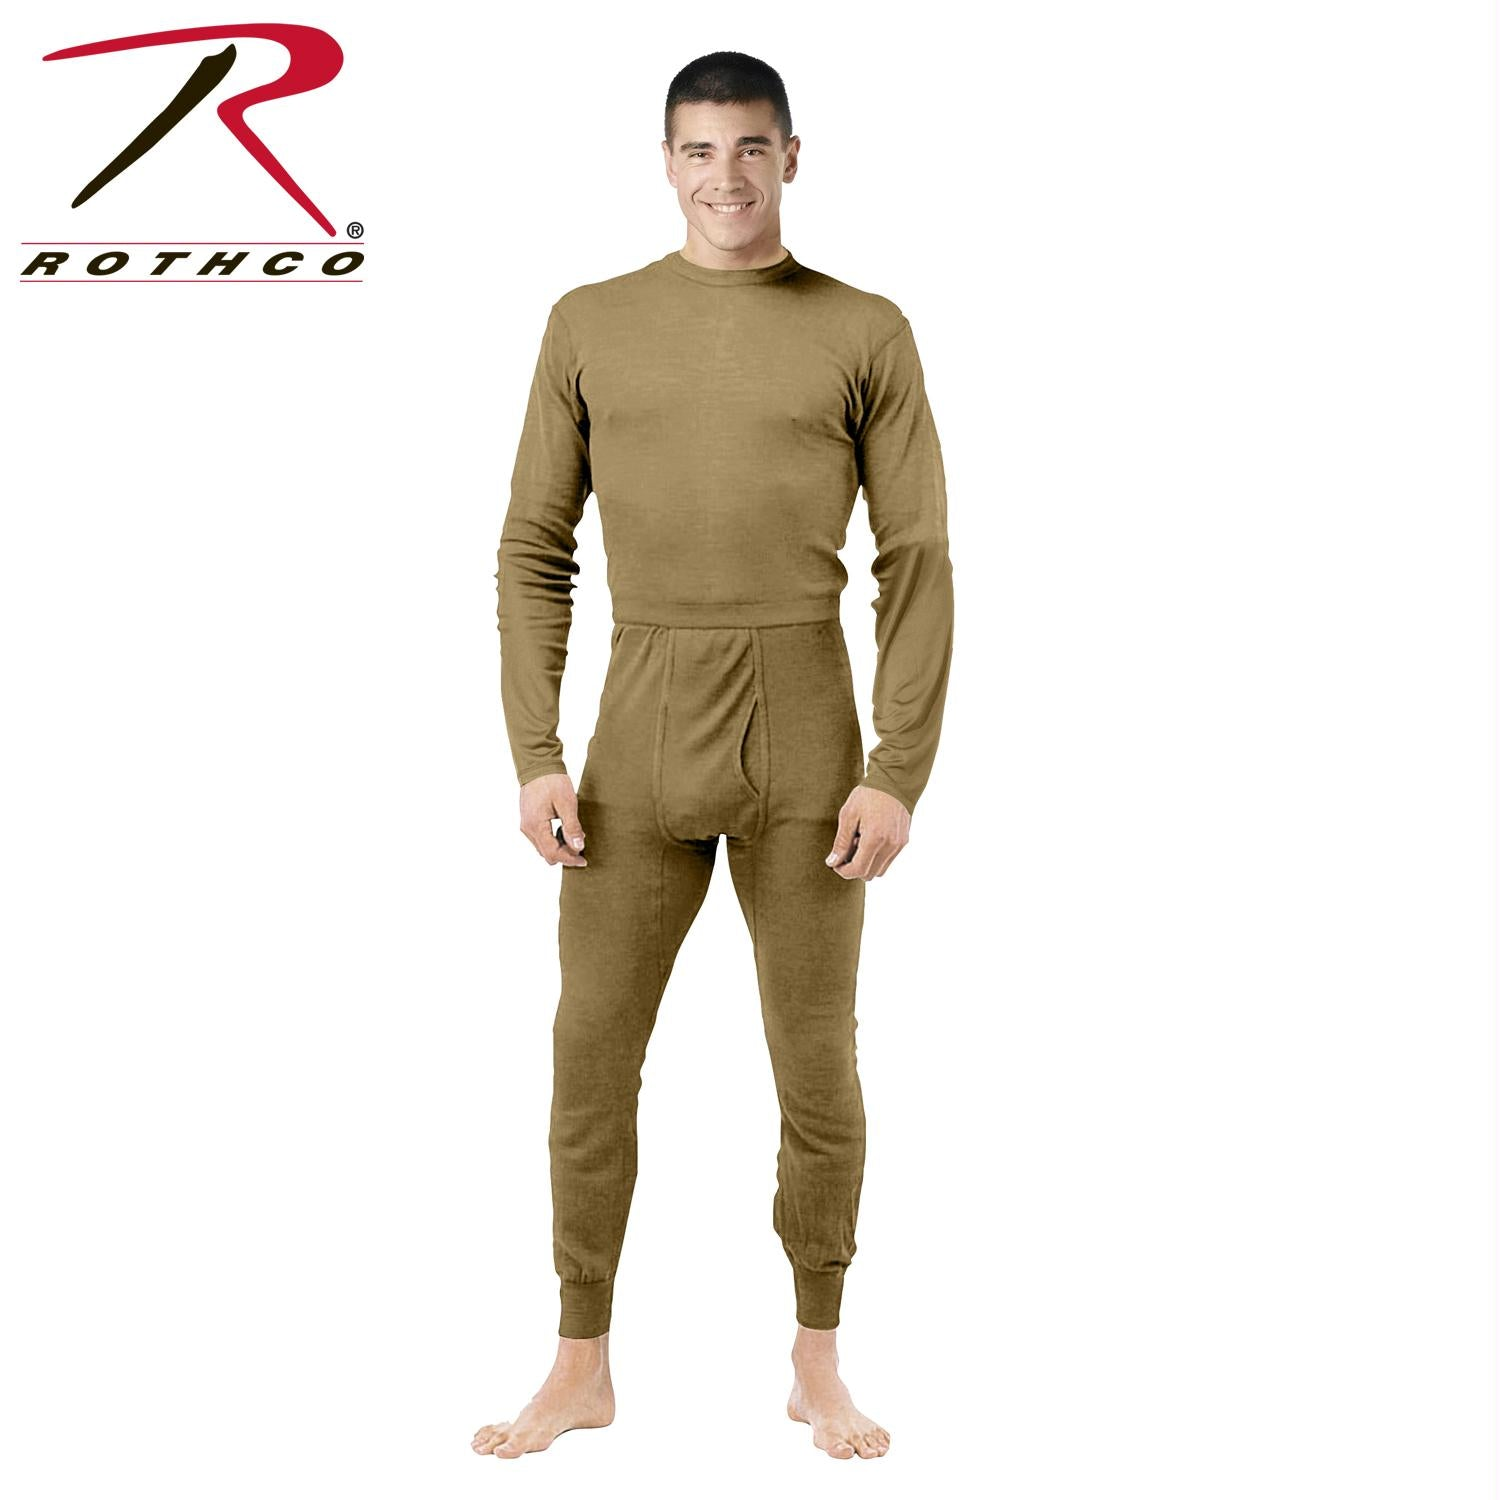 Rothco Gen III Silk Weight Bottoms - AR 670-1 Coyote Brown / S